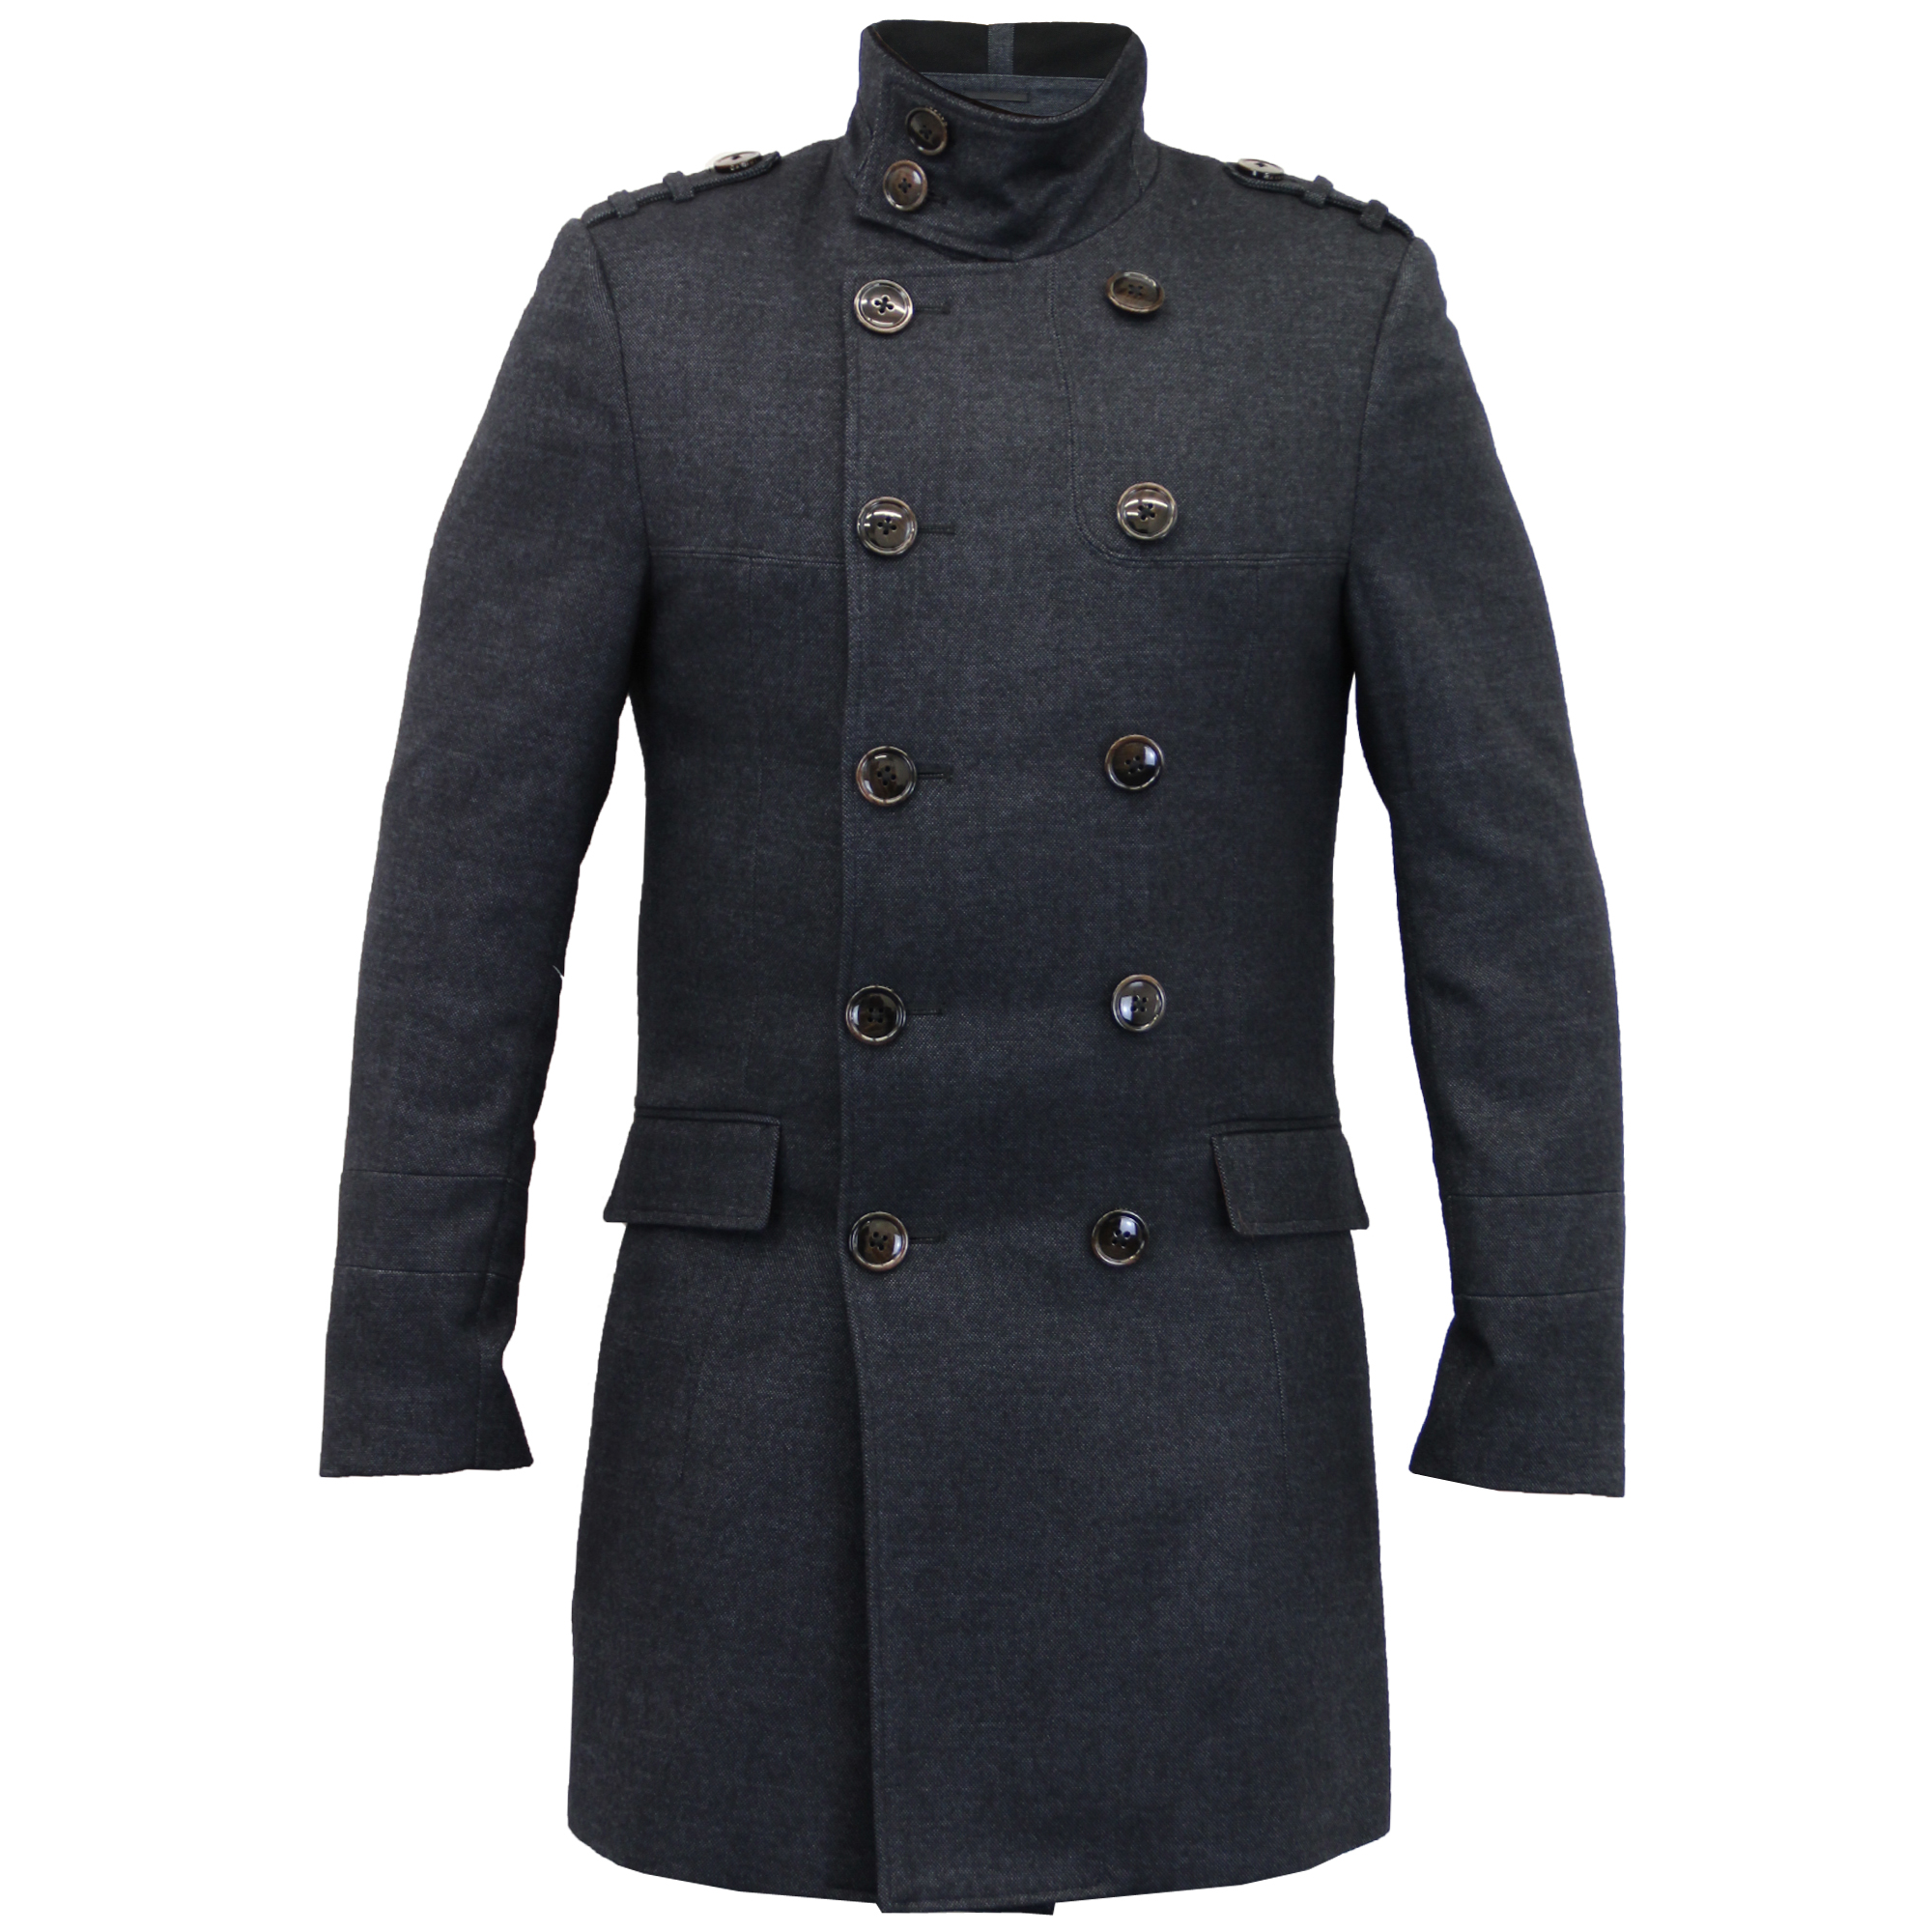 Shop Wilsons Leather for women's wool jackets & coats and more. Get high quality women's wool & wool-blend jackets and coats at exceptional values.